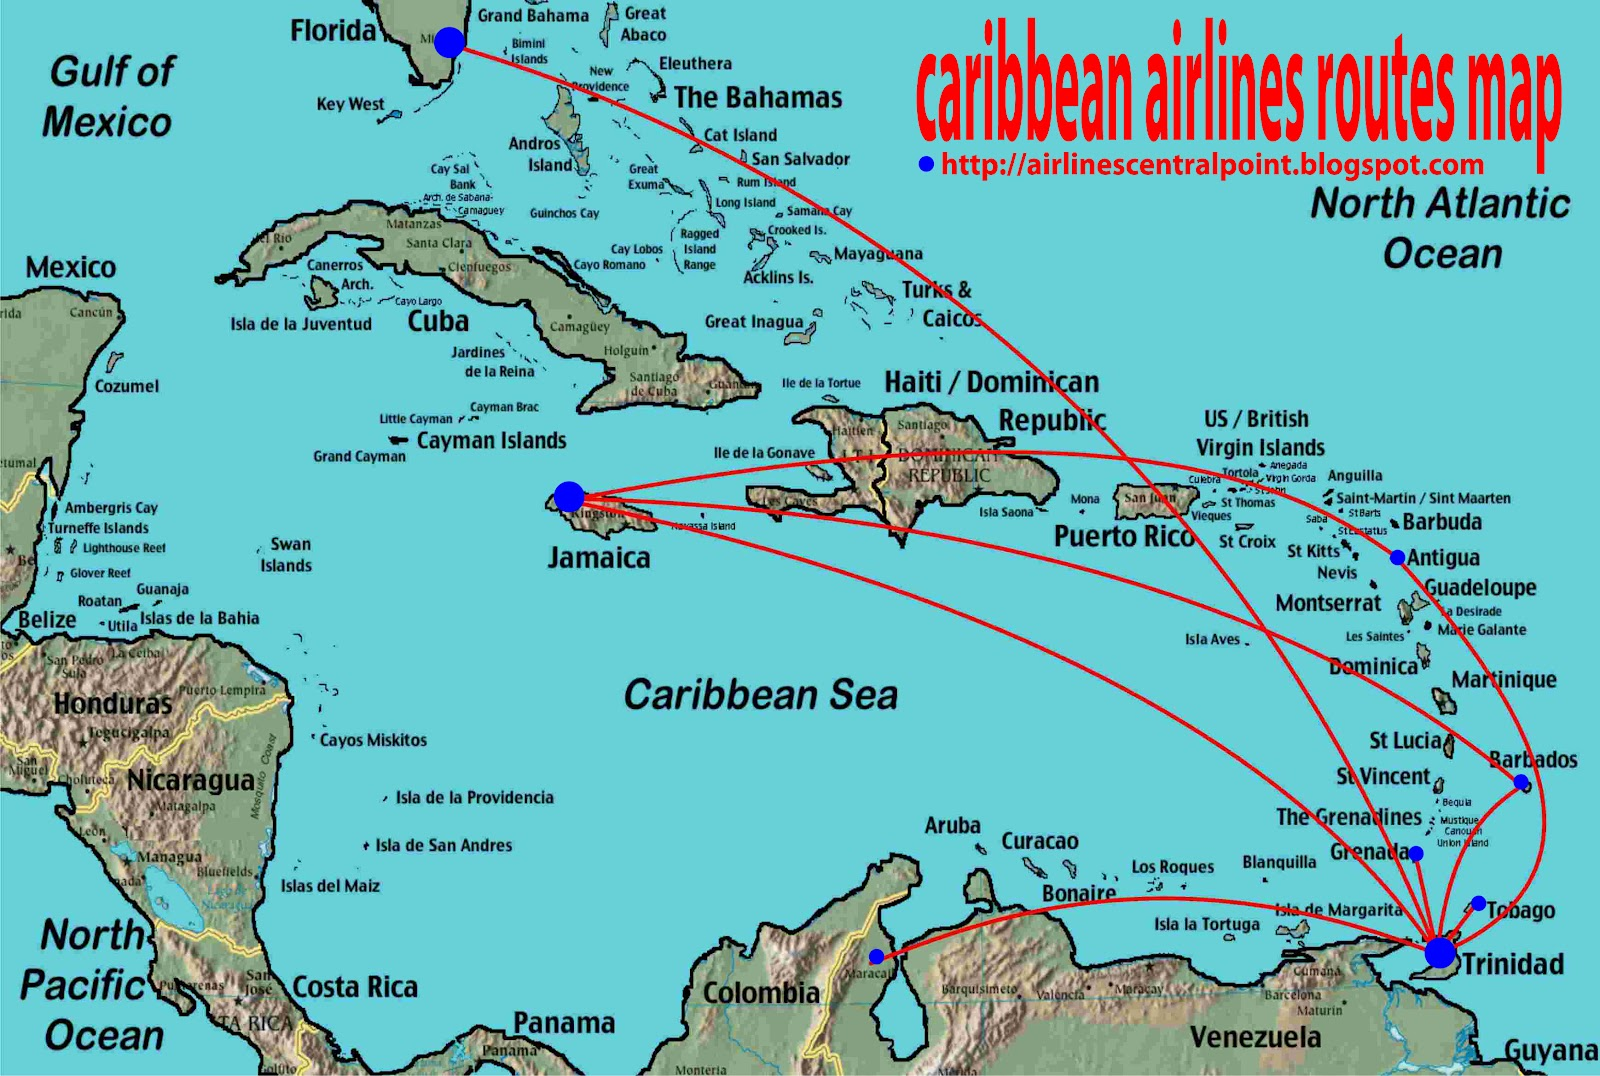 routes map: Caribbean airlines routes map